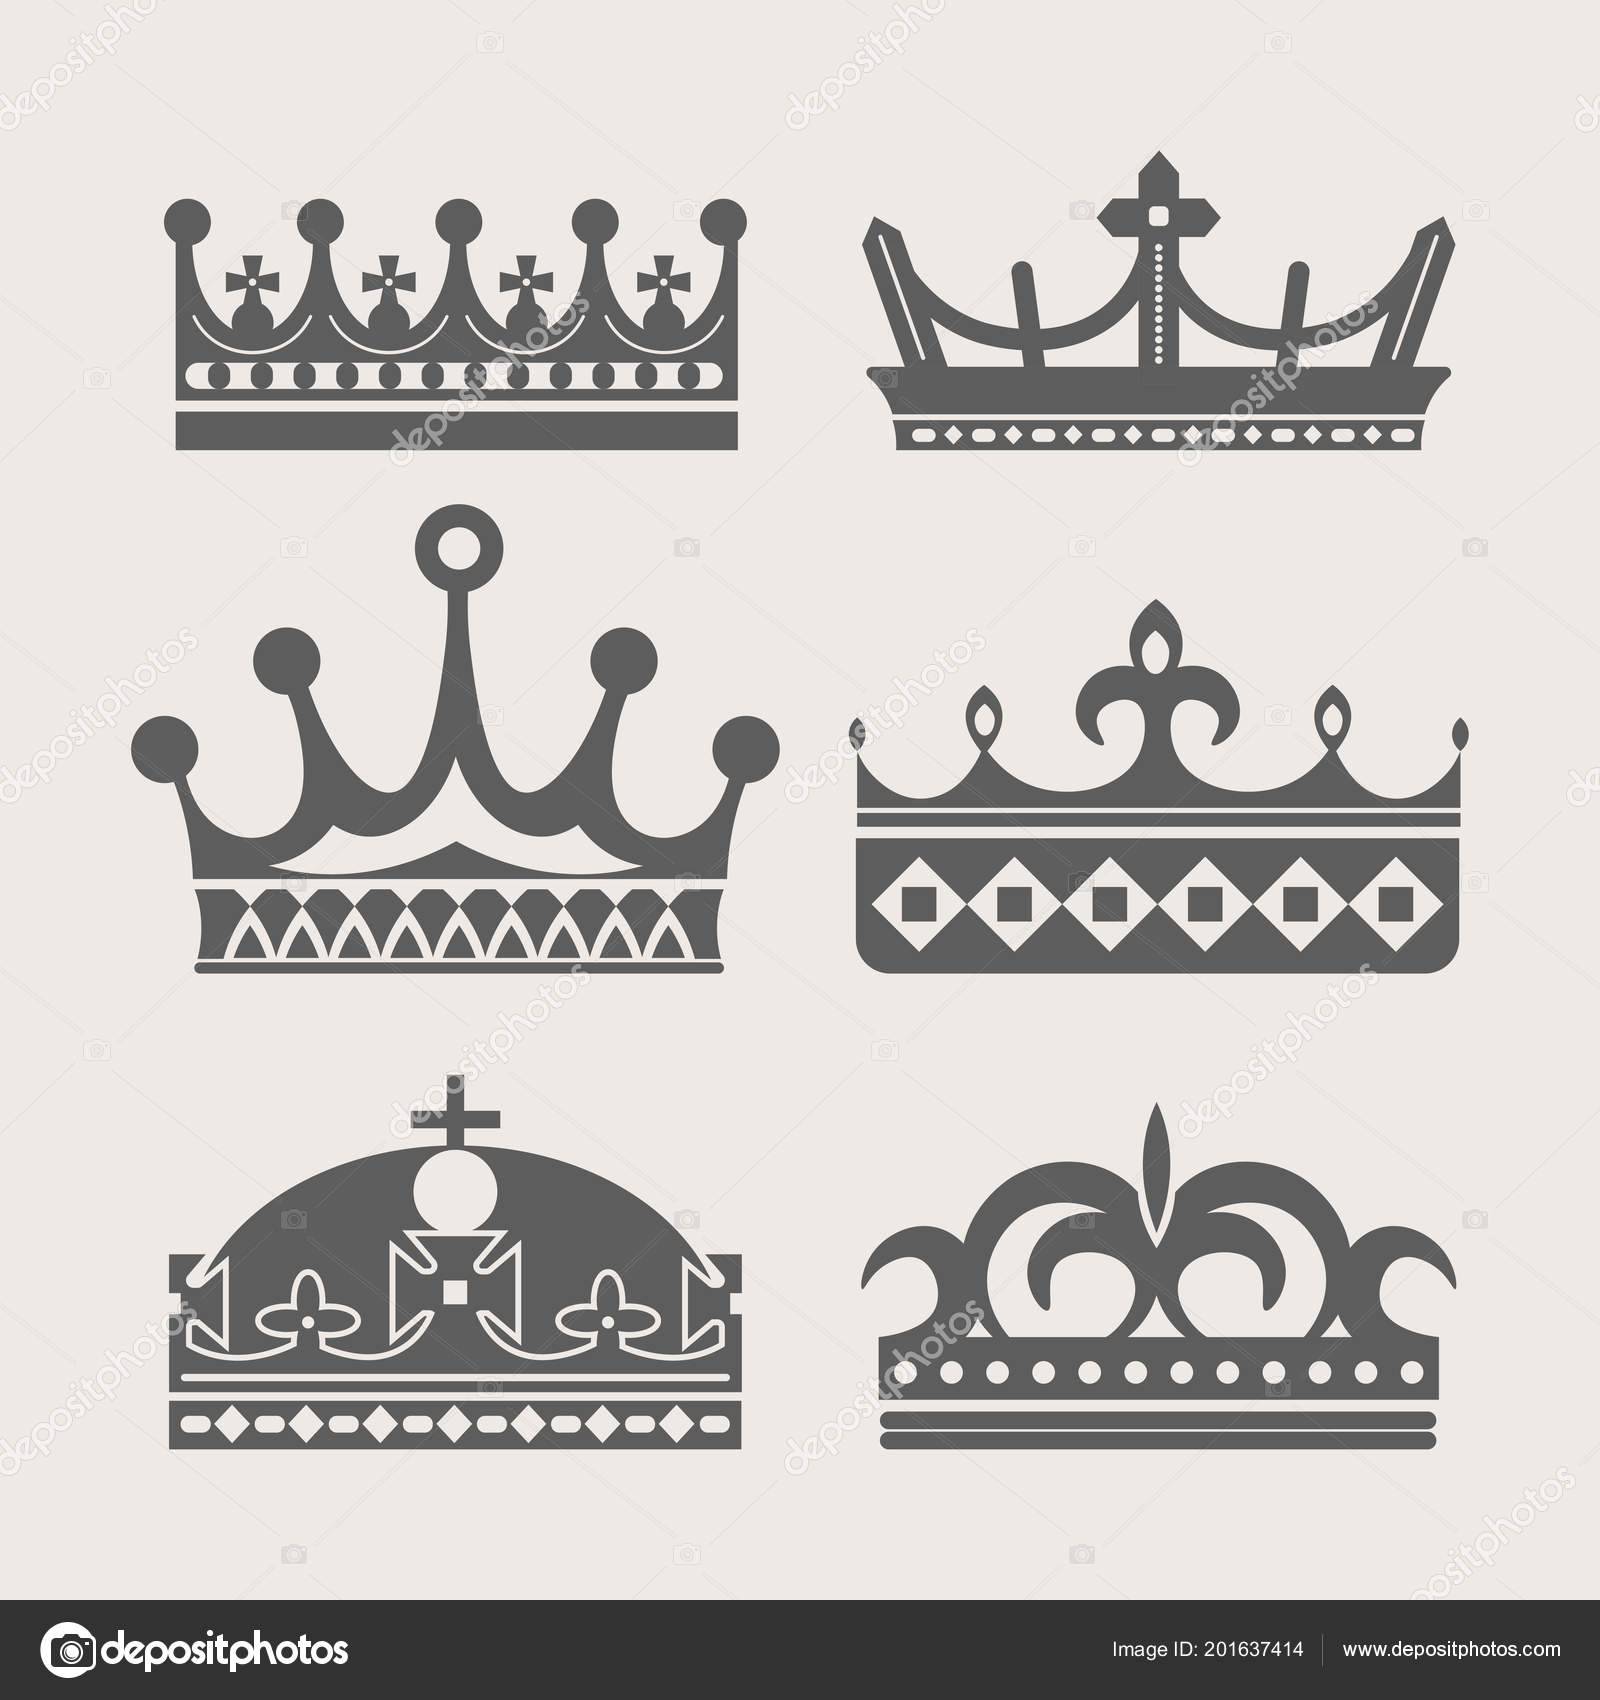 Crown Logo Royal Diadem Heraldic Tiara Symbol Vector Queen King